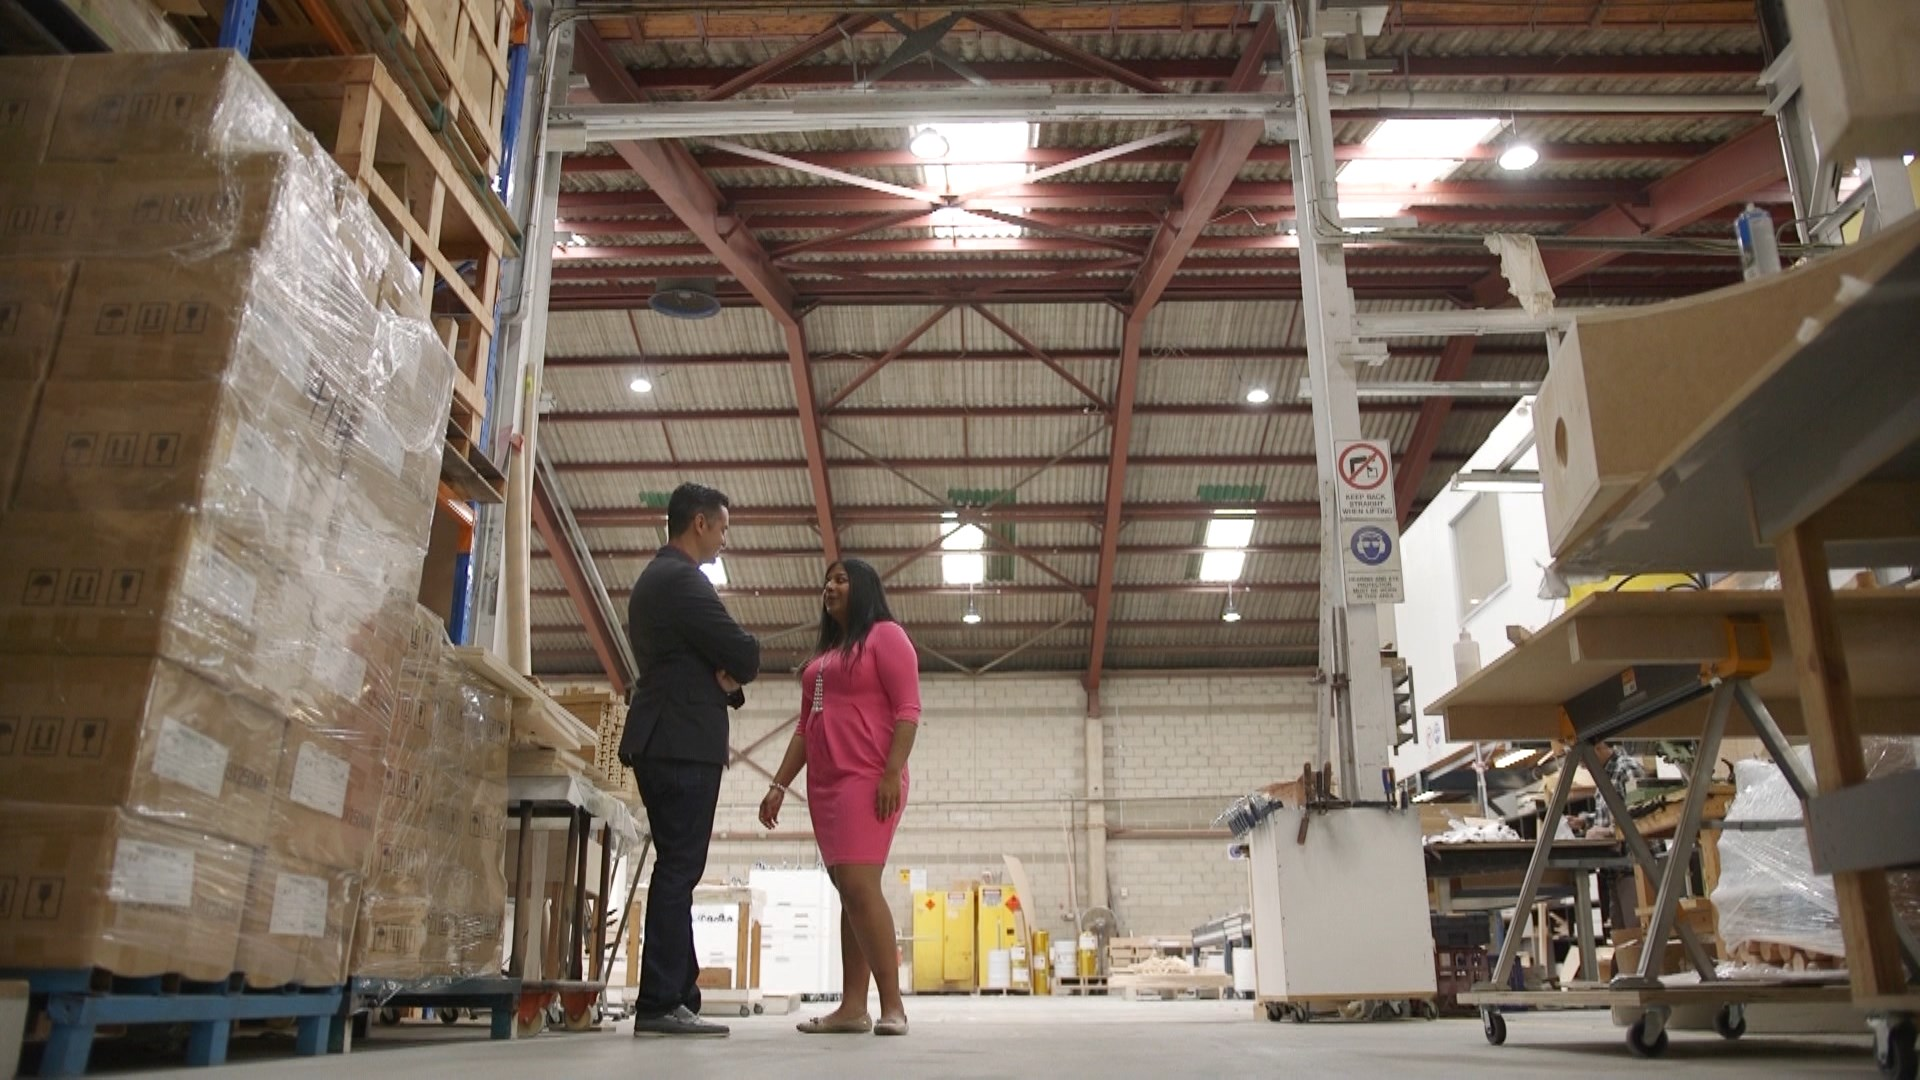 Priyanka with Ricardo Goncalves in the Luxmy factory.